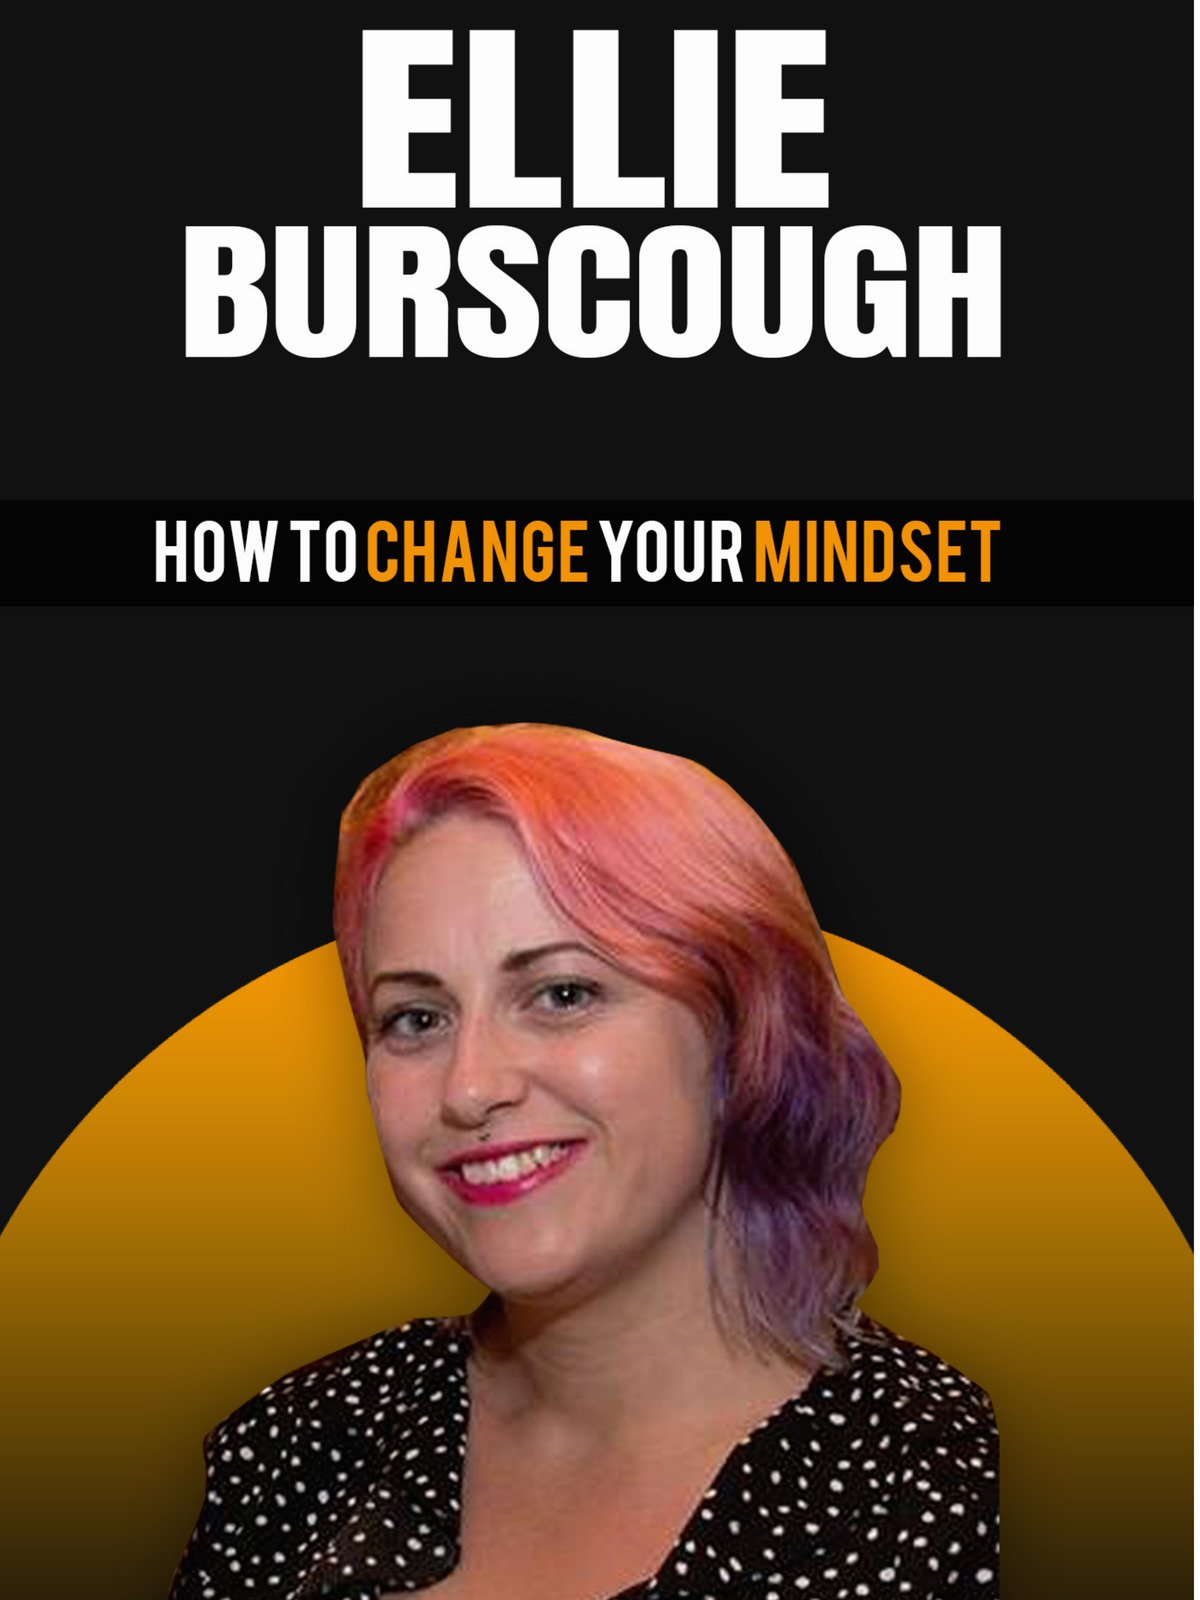 Ellie Burscough: How To Change Your Mindset